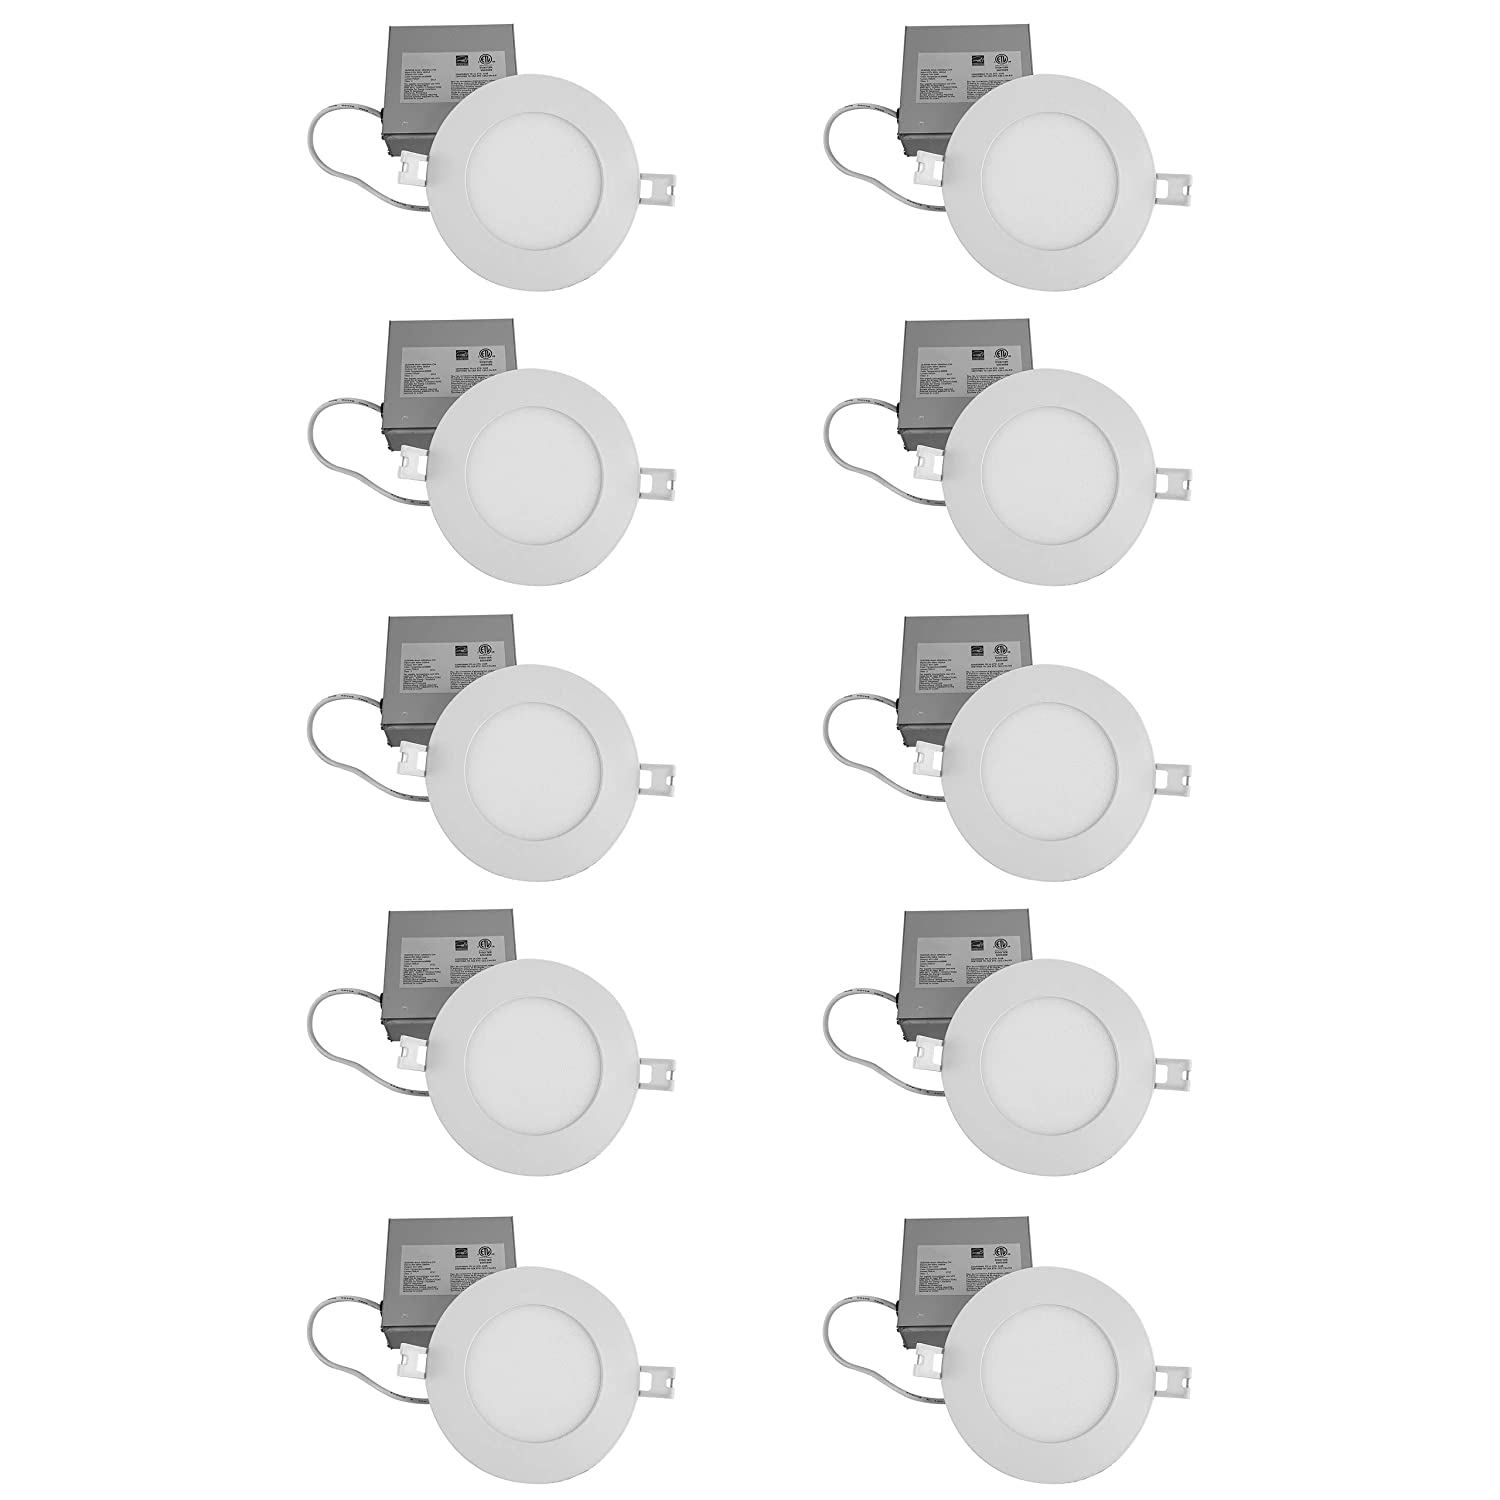 QPLUS 4 Inch LED Slim Panel Recessed Light Retrofit Pot Light, 10 Watts (Equivalent To 75W), 5000K Day Light, Dimmable, 750 Lumens, IC Rated, CSA/Energy Star/cETLus Certified (5000K Day Light) (10 Pack) Dot Lighting